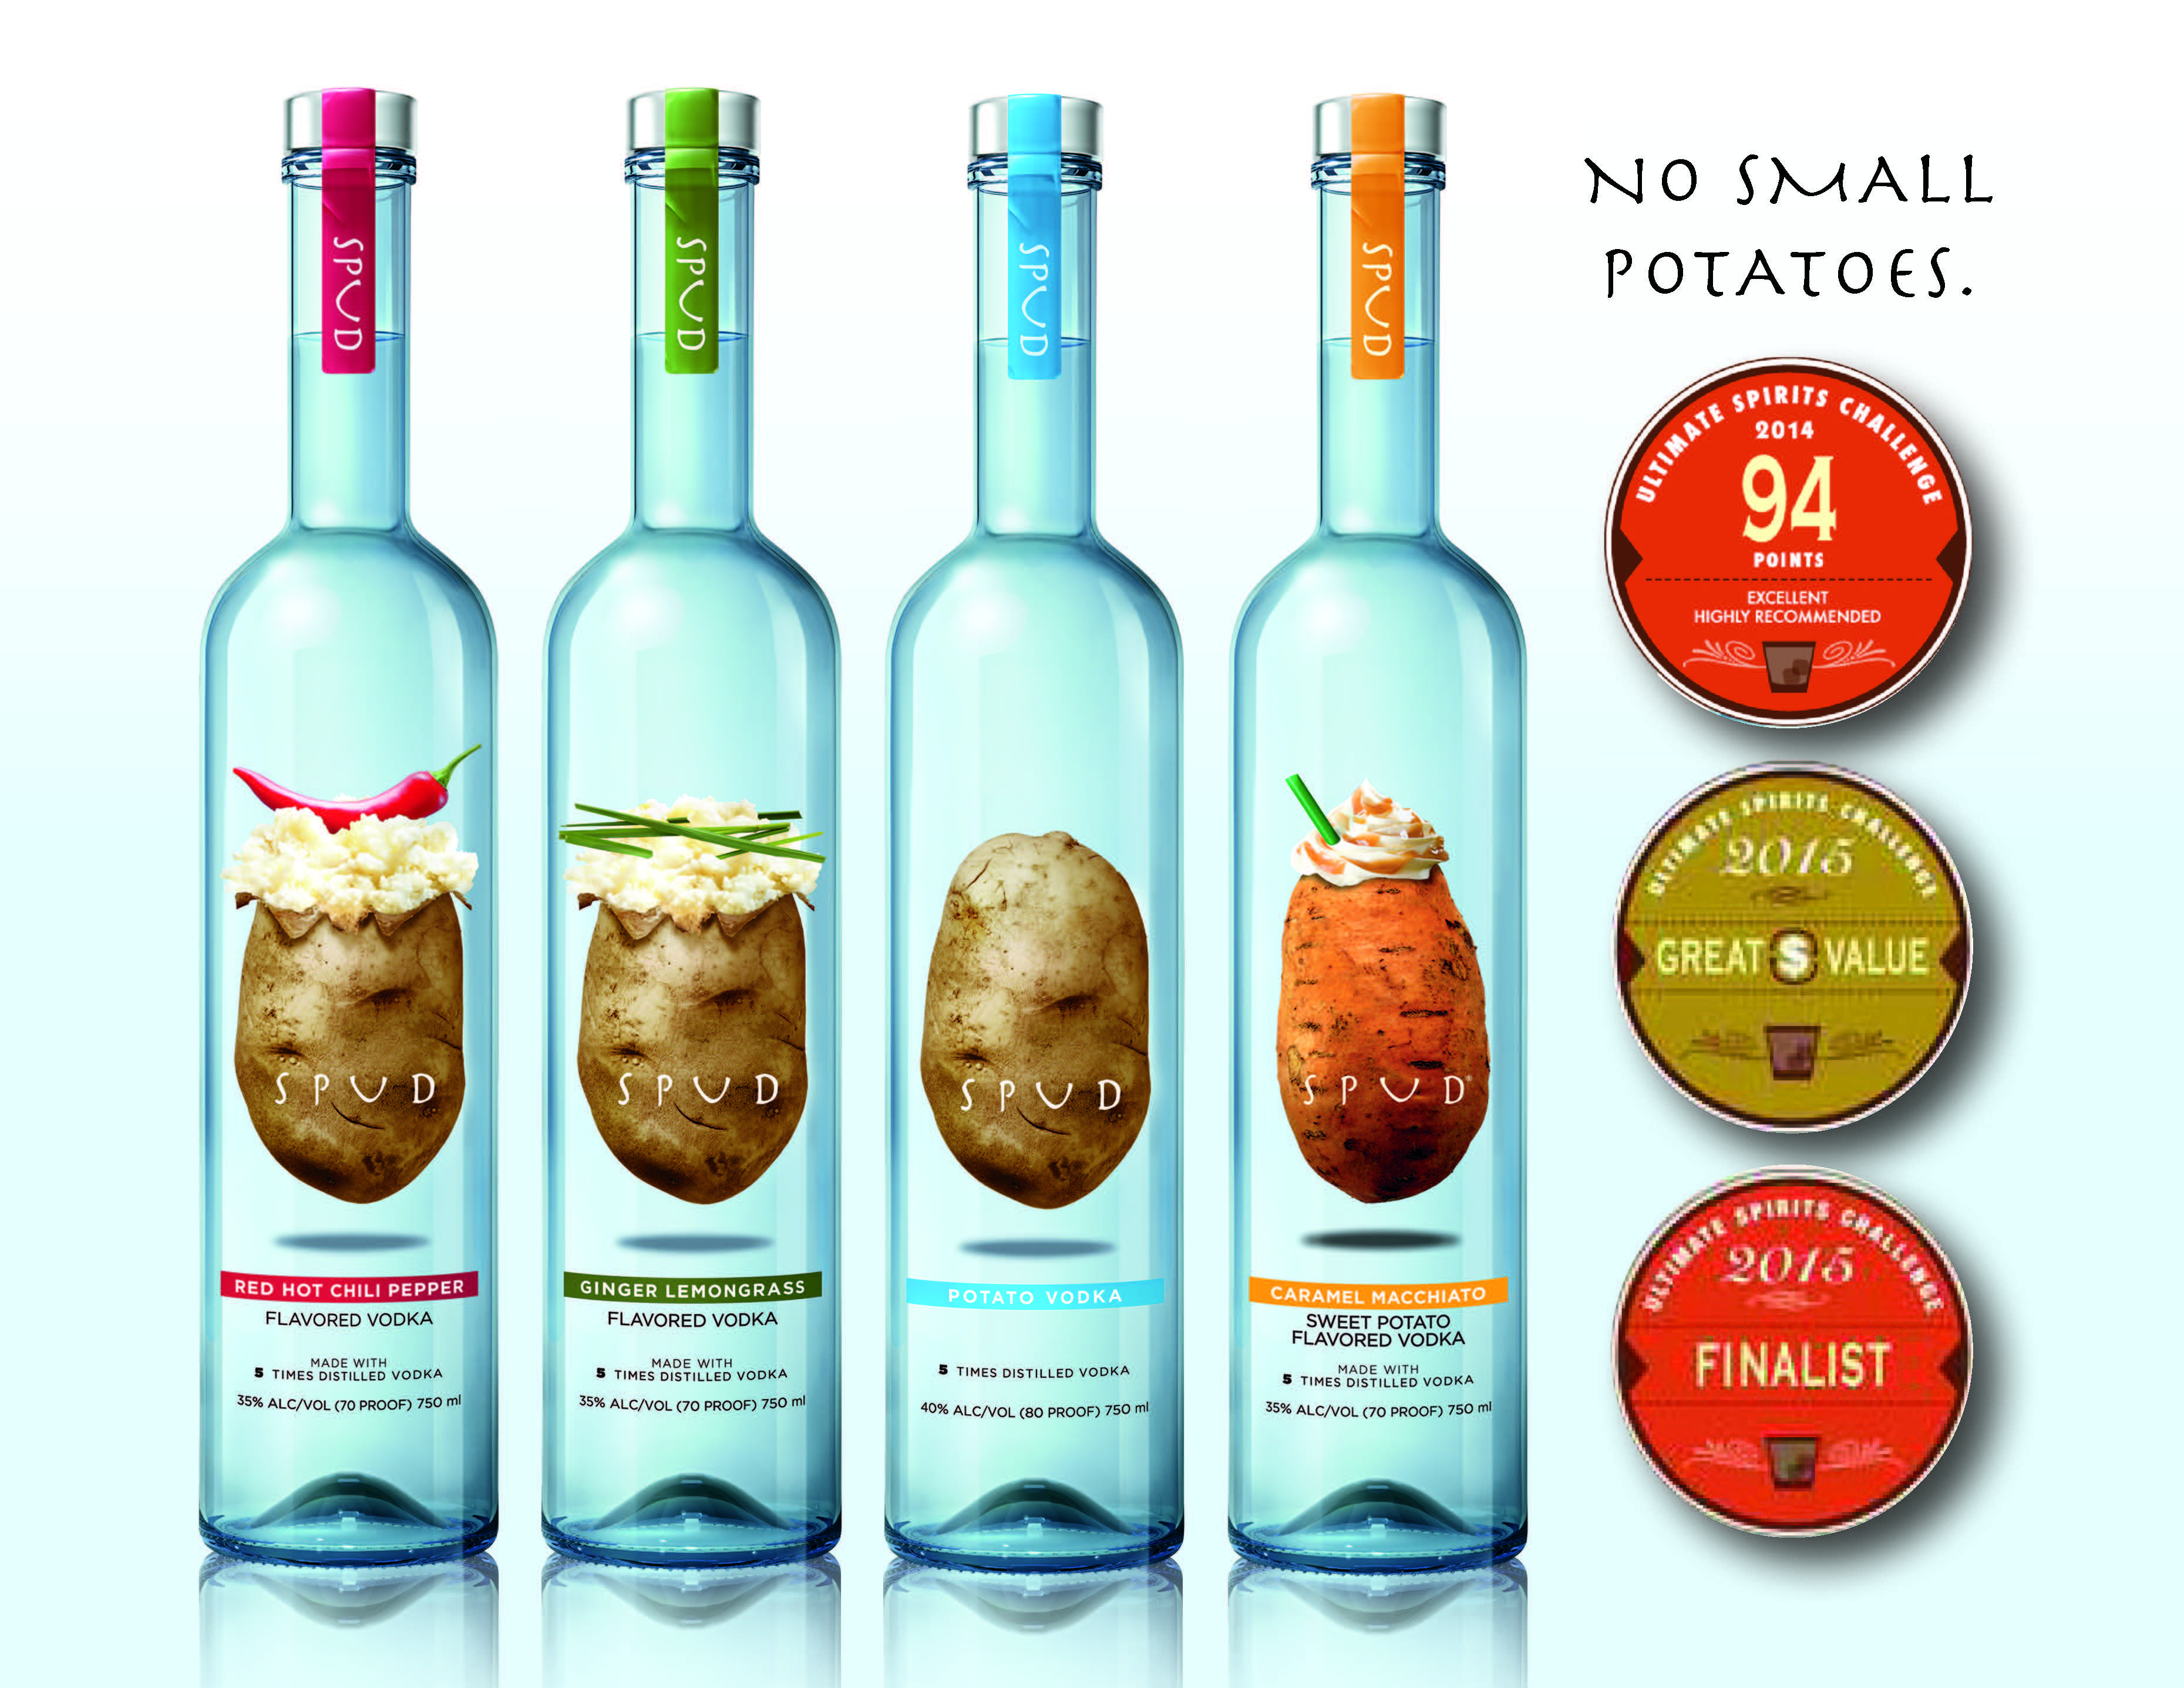 Spud Vodka